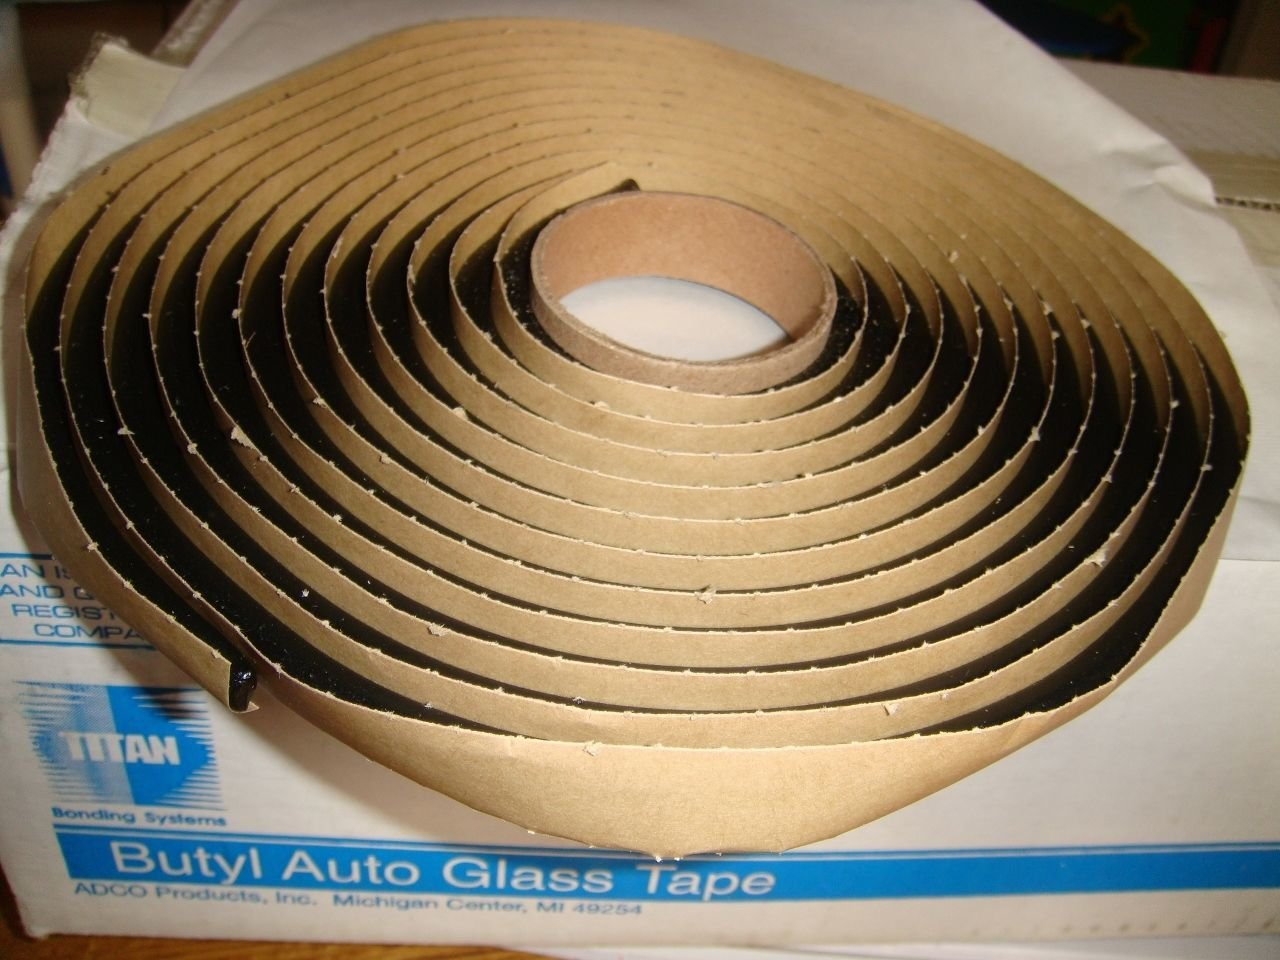 Auto Glass Sealant/Adhesive/Butyl Tape 15' Roll Soft Seal 5/16''